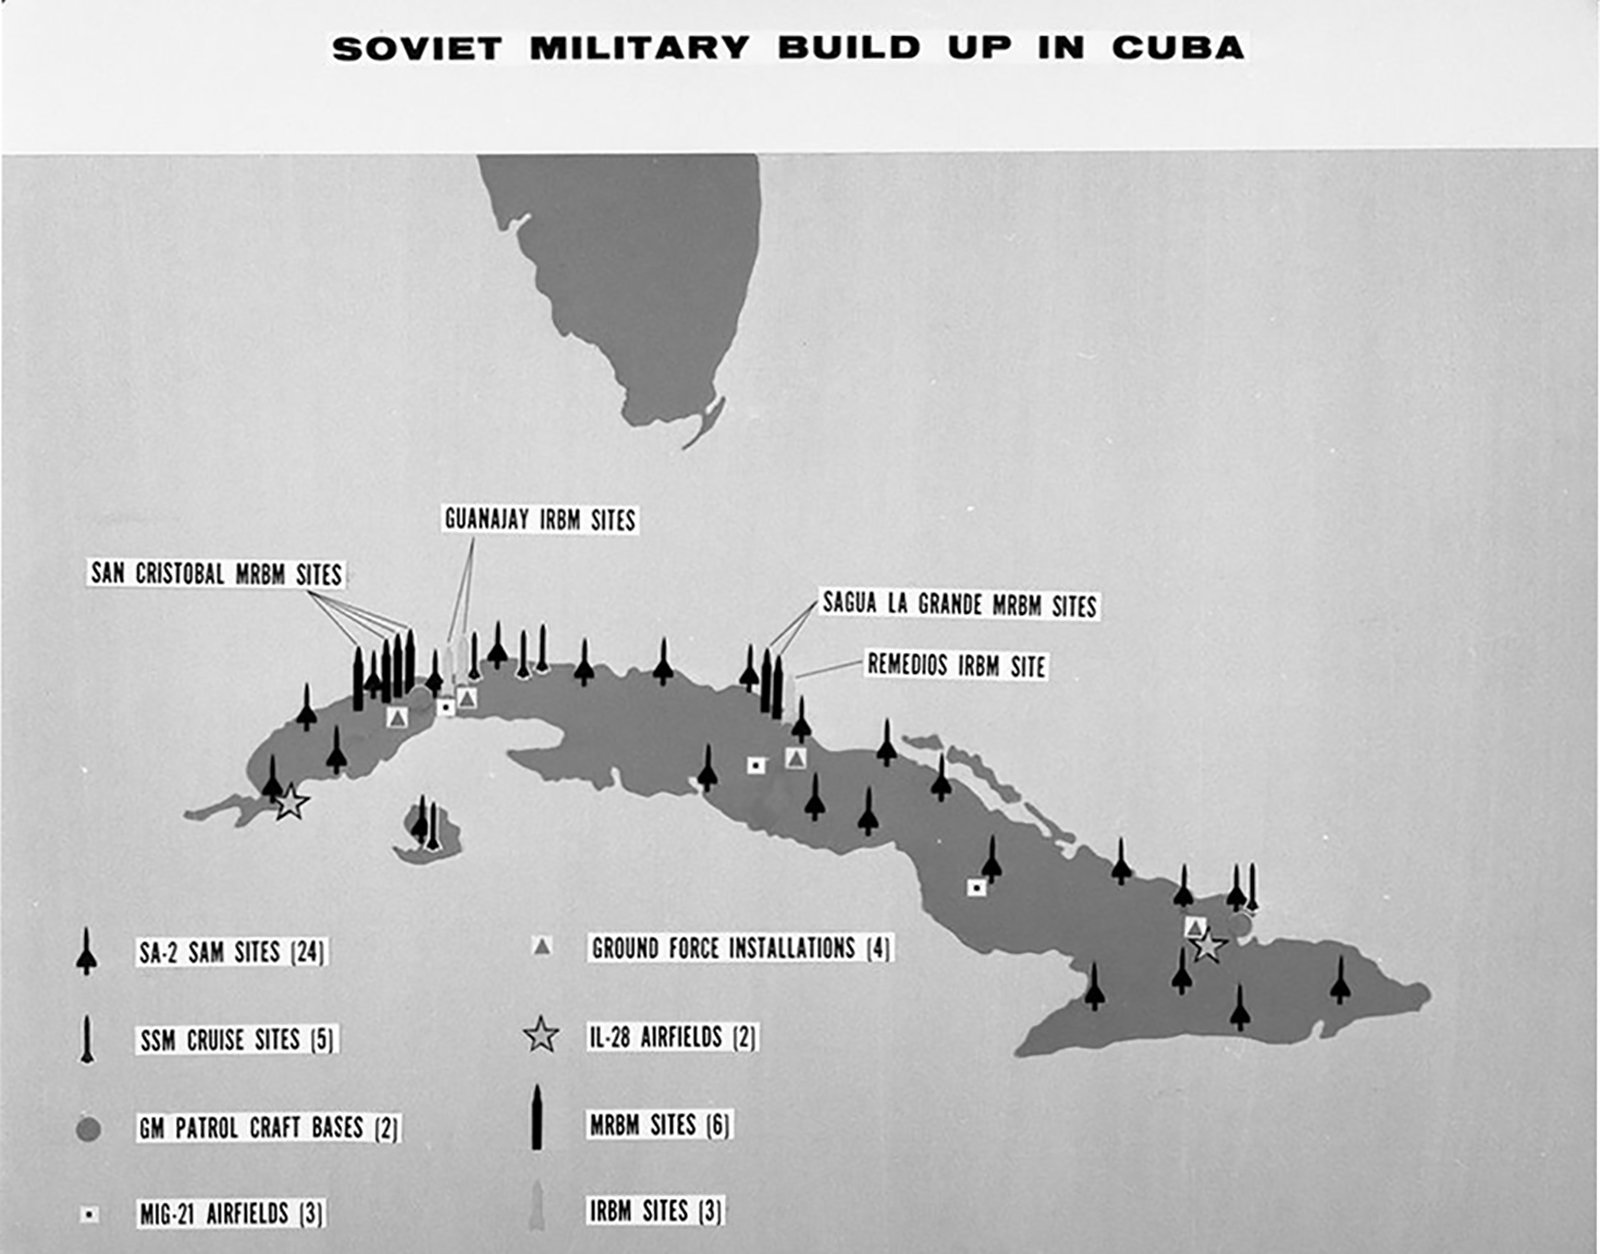 Cuban missile crisis | History, Facts, & Significance | Britannica